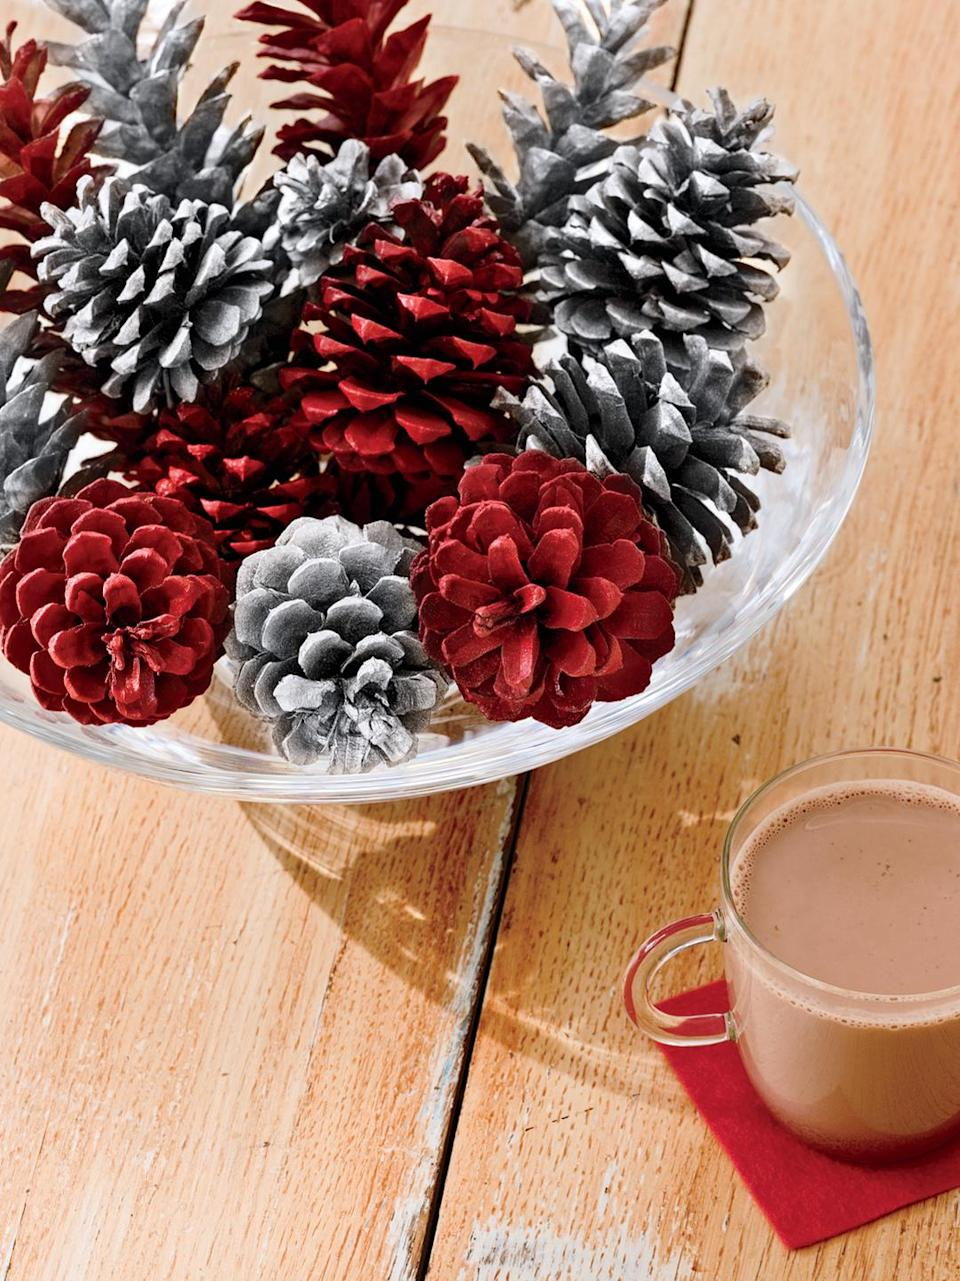 """<p>Here's a fast, festive way to spruce up some evergreen seeds: Lightly spray-paint half the cones in cheery cranberry, the rest in shimmery silver; display in a clear glass bowl. Or to make a pop art-y piece, coat cones completely in a bright lime or gold.</p><p><a class=""""link rapid-noclick-resp"""" href=""""https://www.amazon.com/12-Ponderosa-Decorative-UNSCENTED-Displays/dp/B016YWC15Y/?tag=syn-yahoo-20&ascsubtag=%5Bartid%7C10055.g.2196%5Bsrc%7Cyahoo-us"""" rel=""""nofollow noopener"""" target=""""_blank"""" data-ylk=""""slk:SHOP PINECONES"""">SHOP PINECONES</a></p>"""